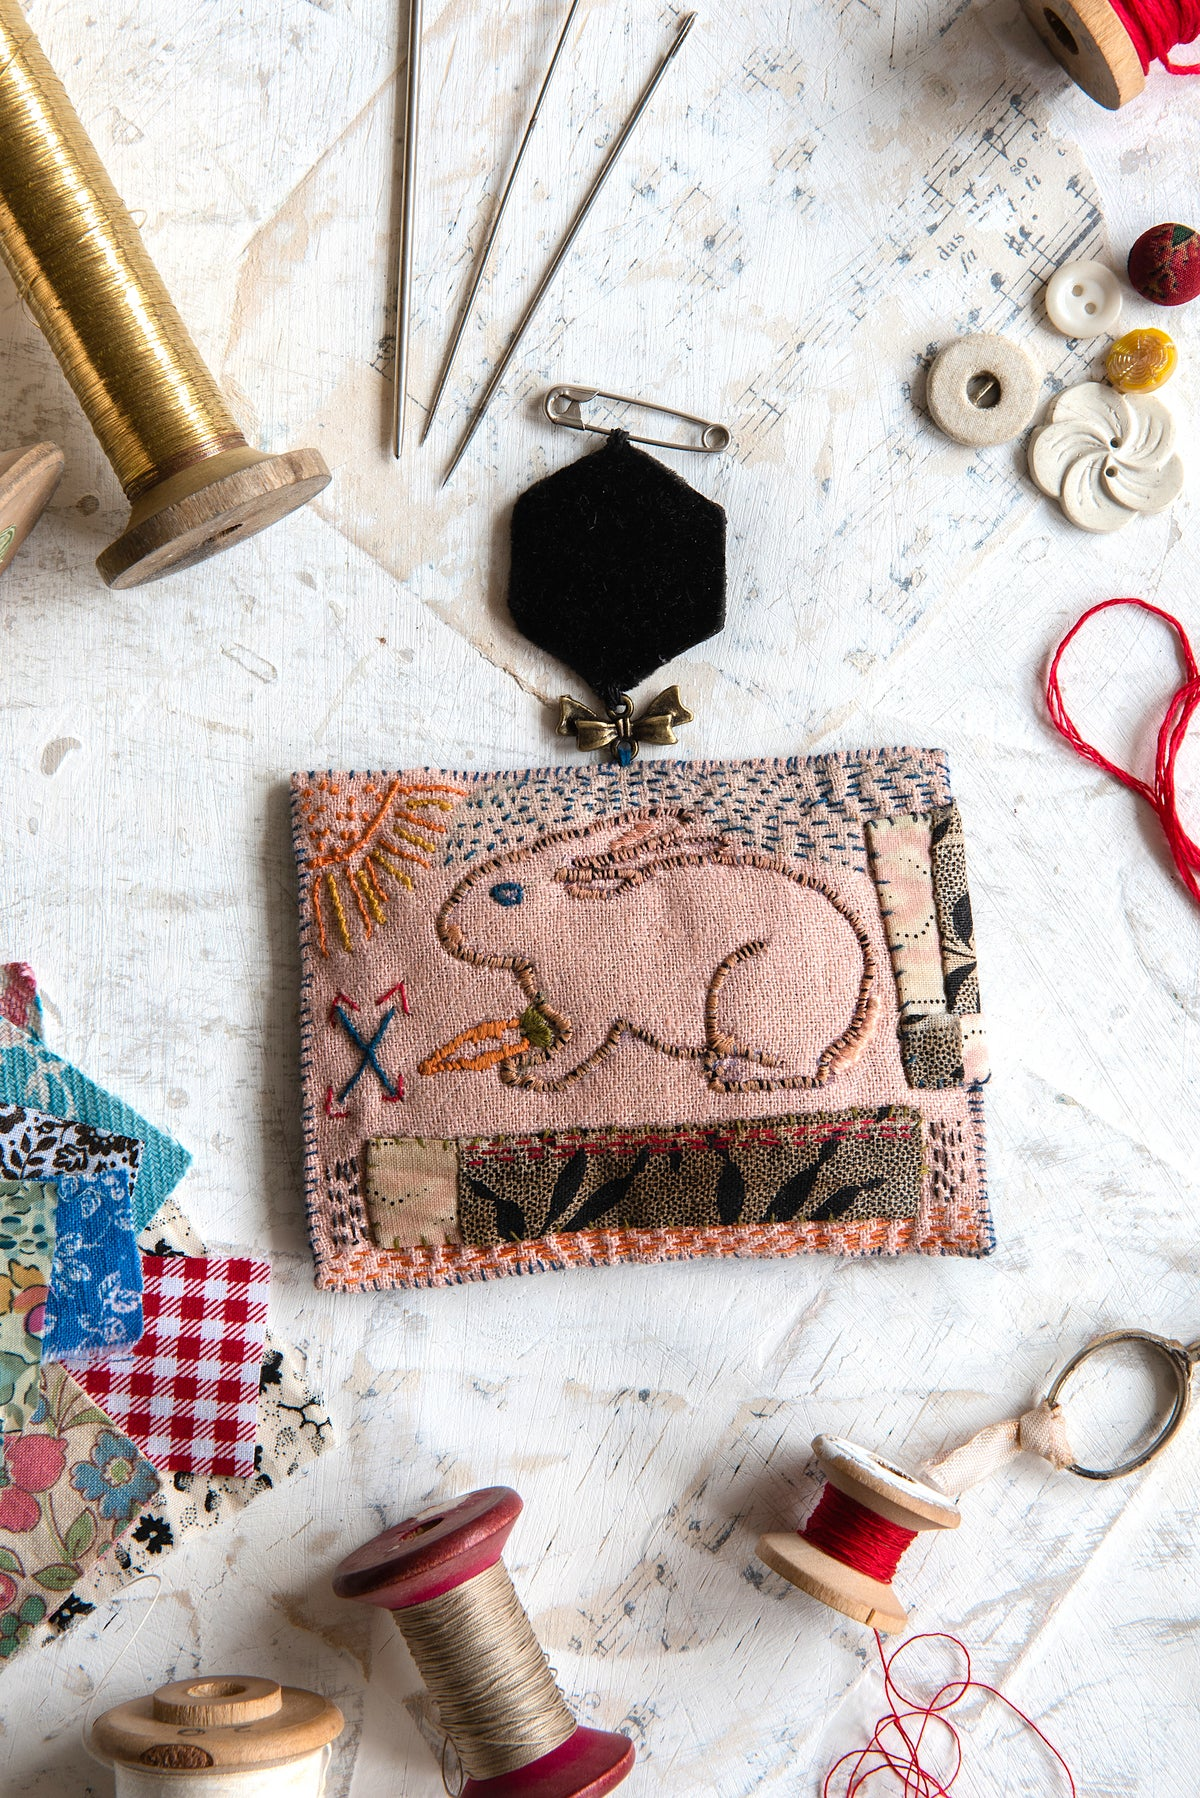 Image of 'Make Your Own Bunny Brooch' kit